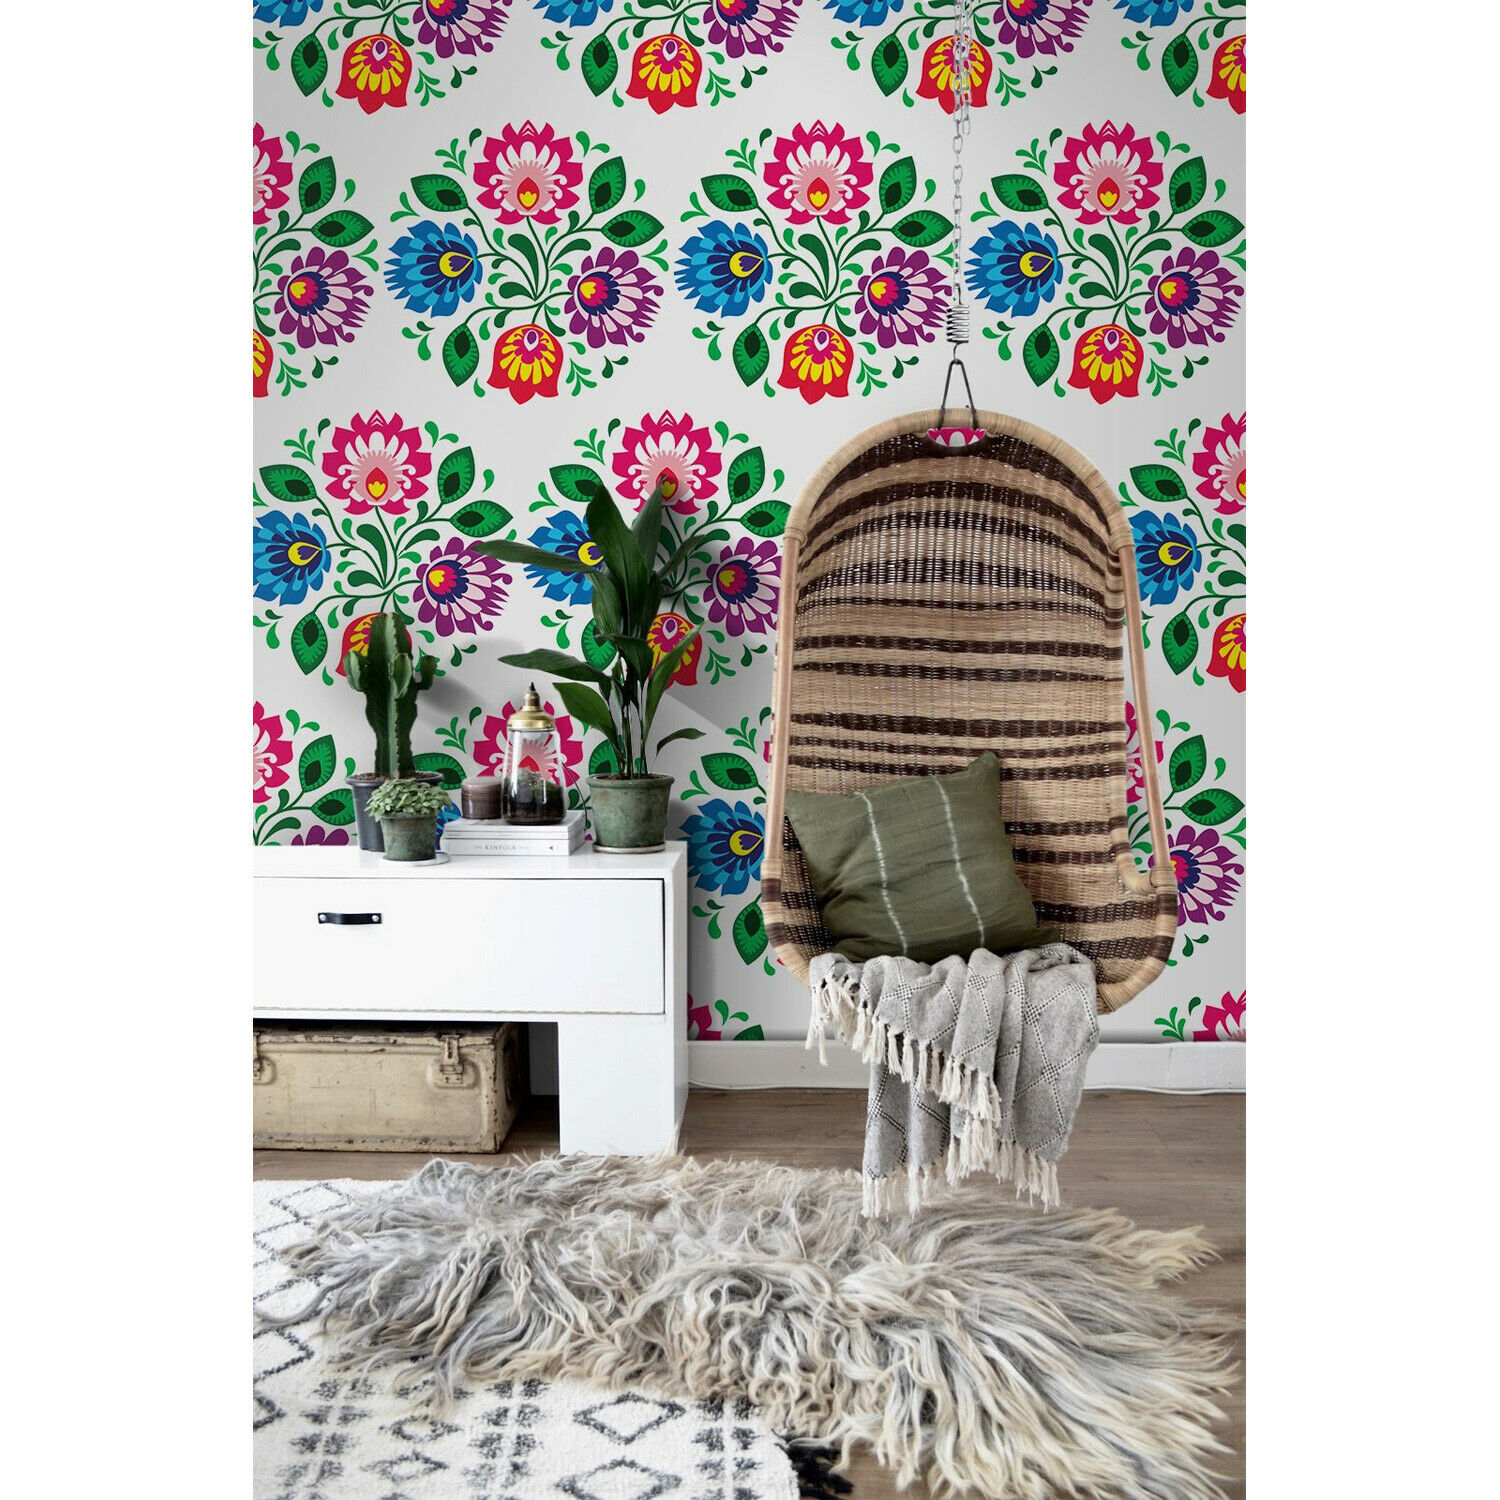 Traditional floral self-adhesive colorful bluee and pink wall mural photo mural